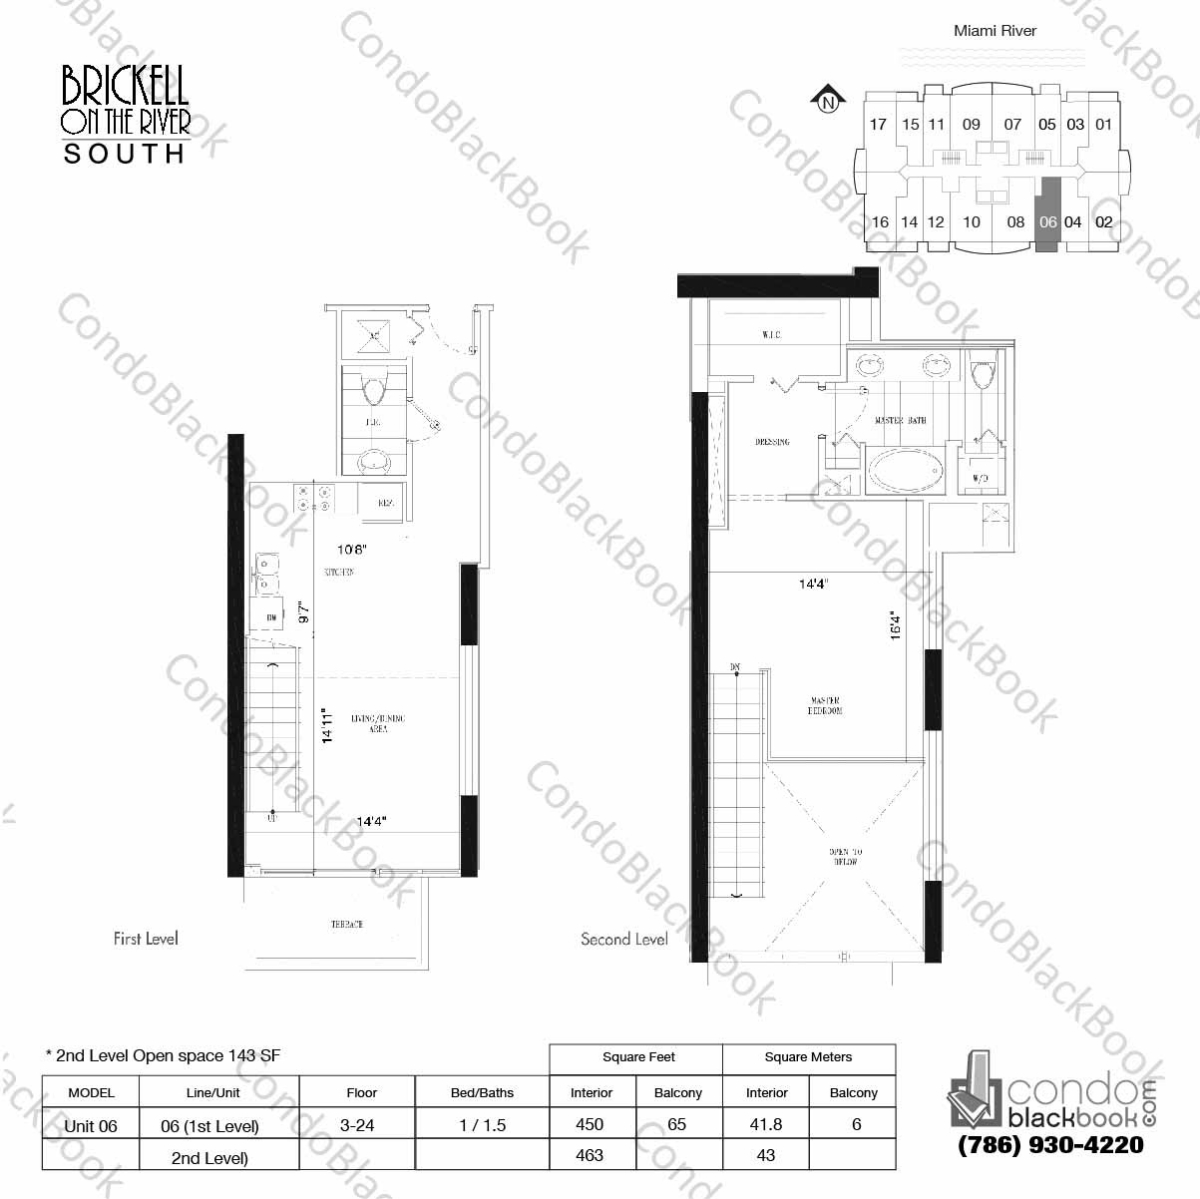 Floor plan for Brickell on the River North Brickell Miami, model Unit 06, line 06, 1.1/5 bedrooms, 913 sq ft